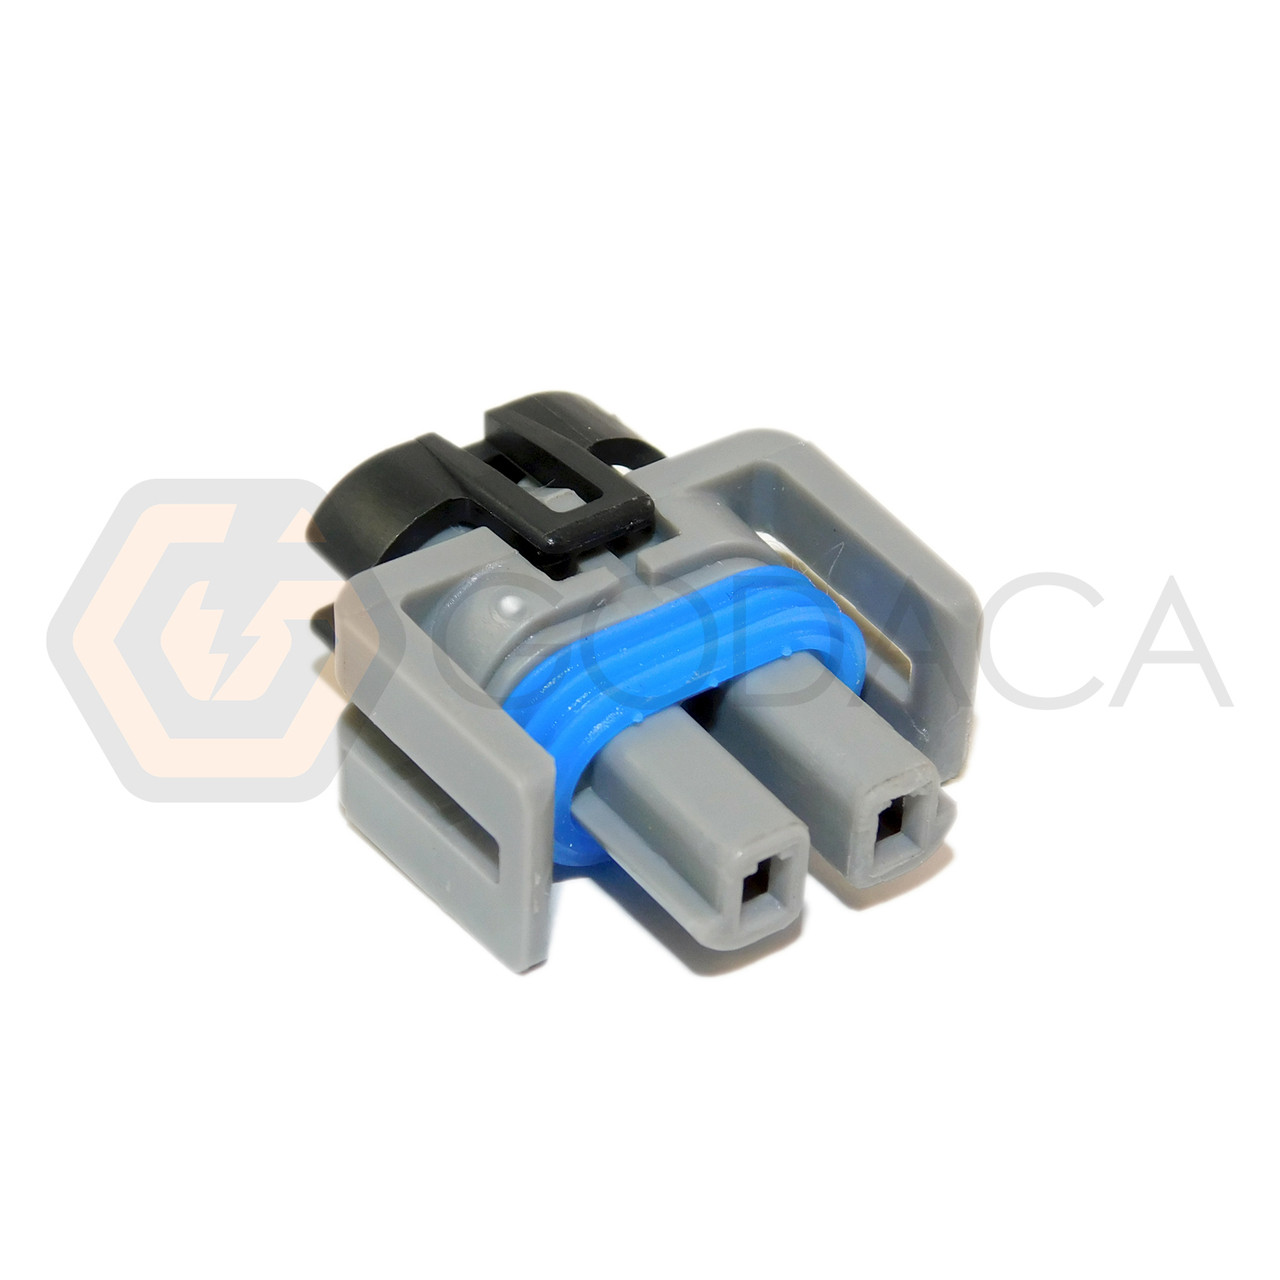 1x Connector 2-way 2 pin for Ford A//C Compressor WPT-1052 w//out wire